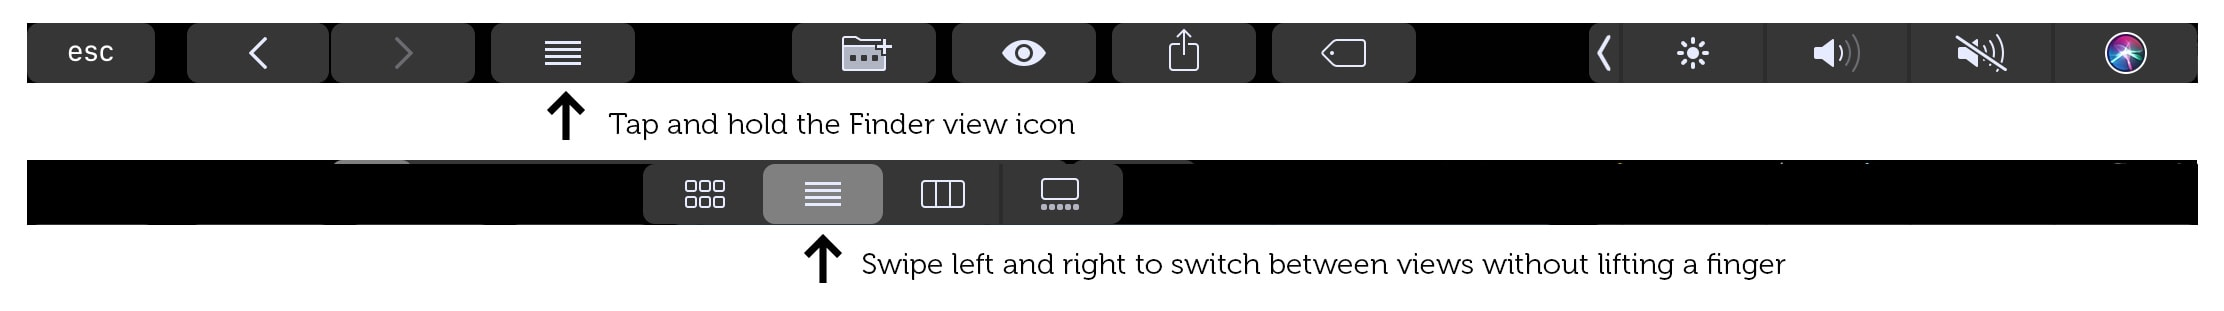 Switch between Finder views without lifting a finger